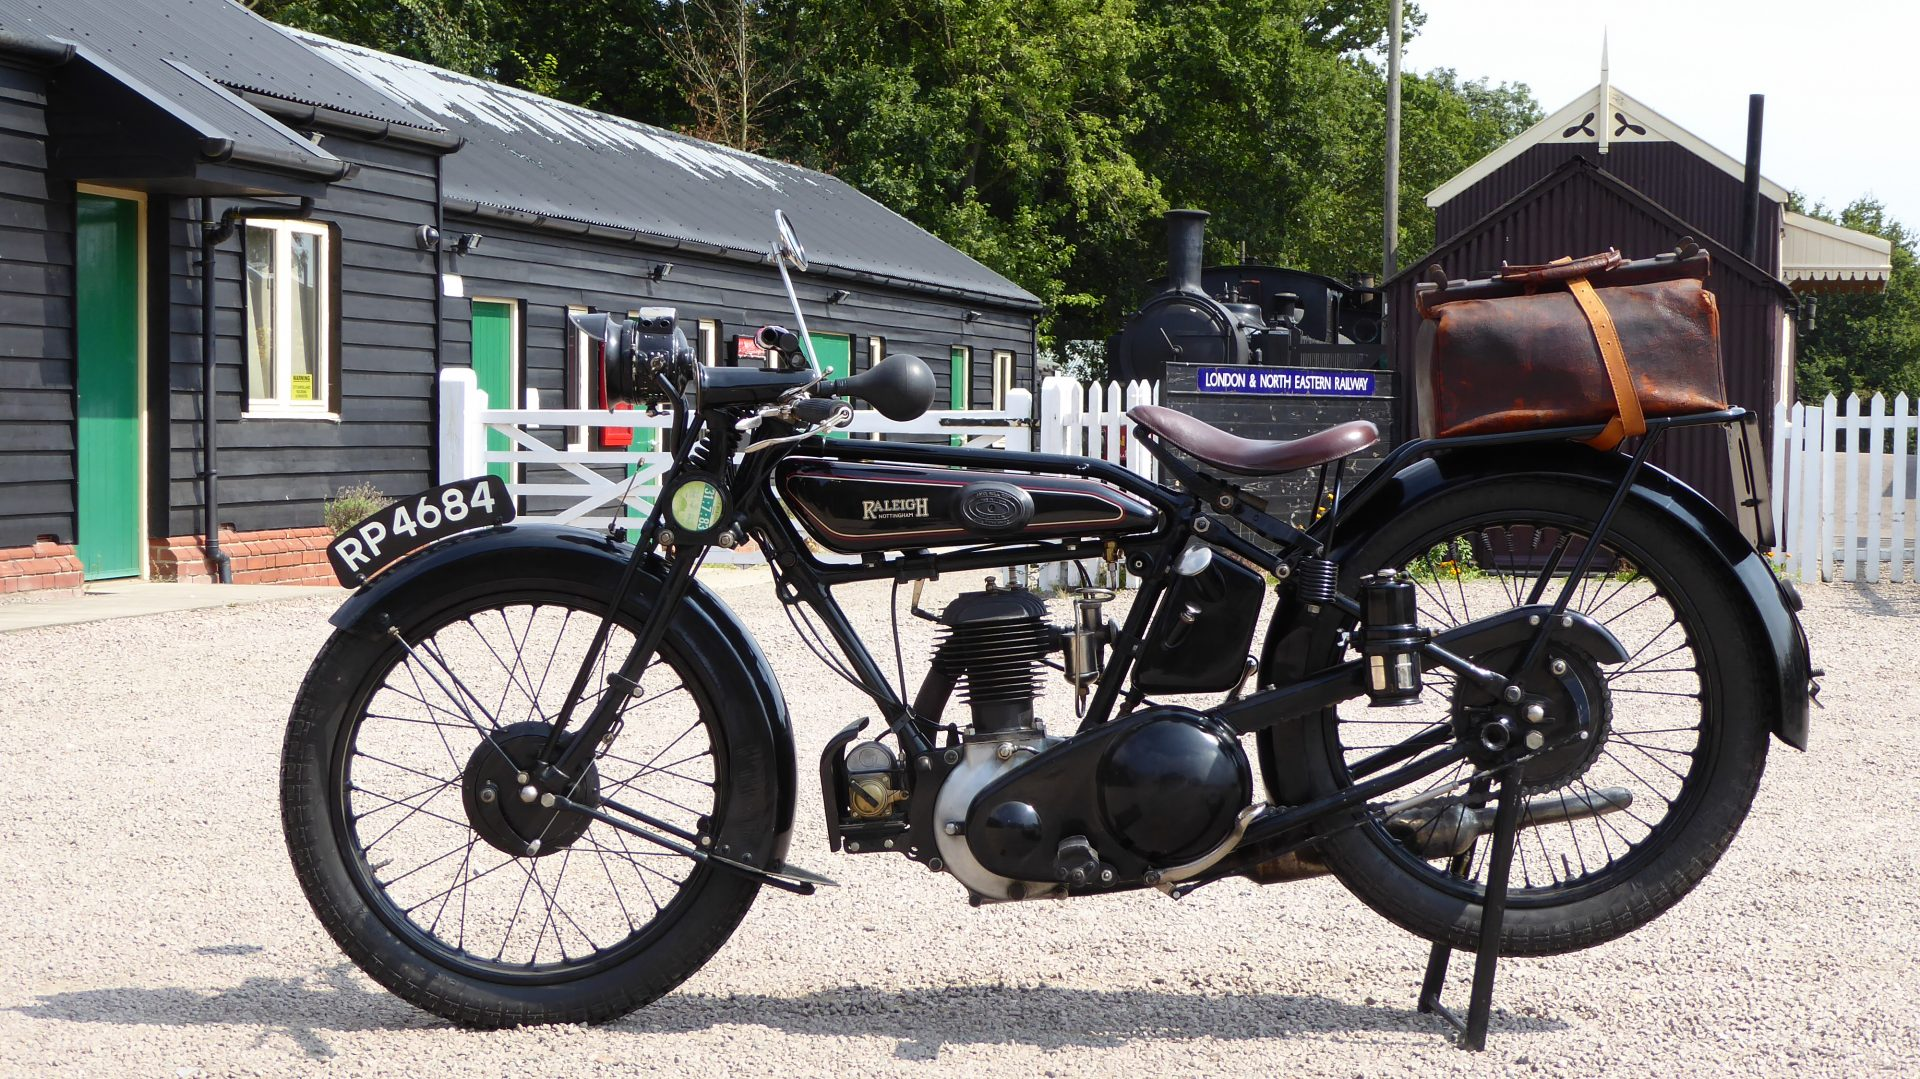 Norwich Vintage Motorcycle Club to visit Middy on Dennis Day